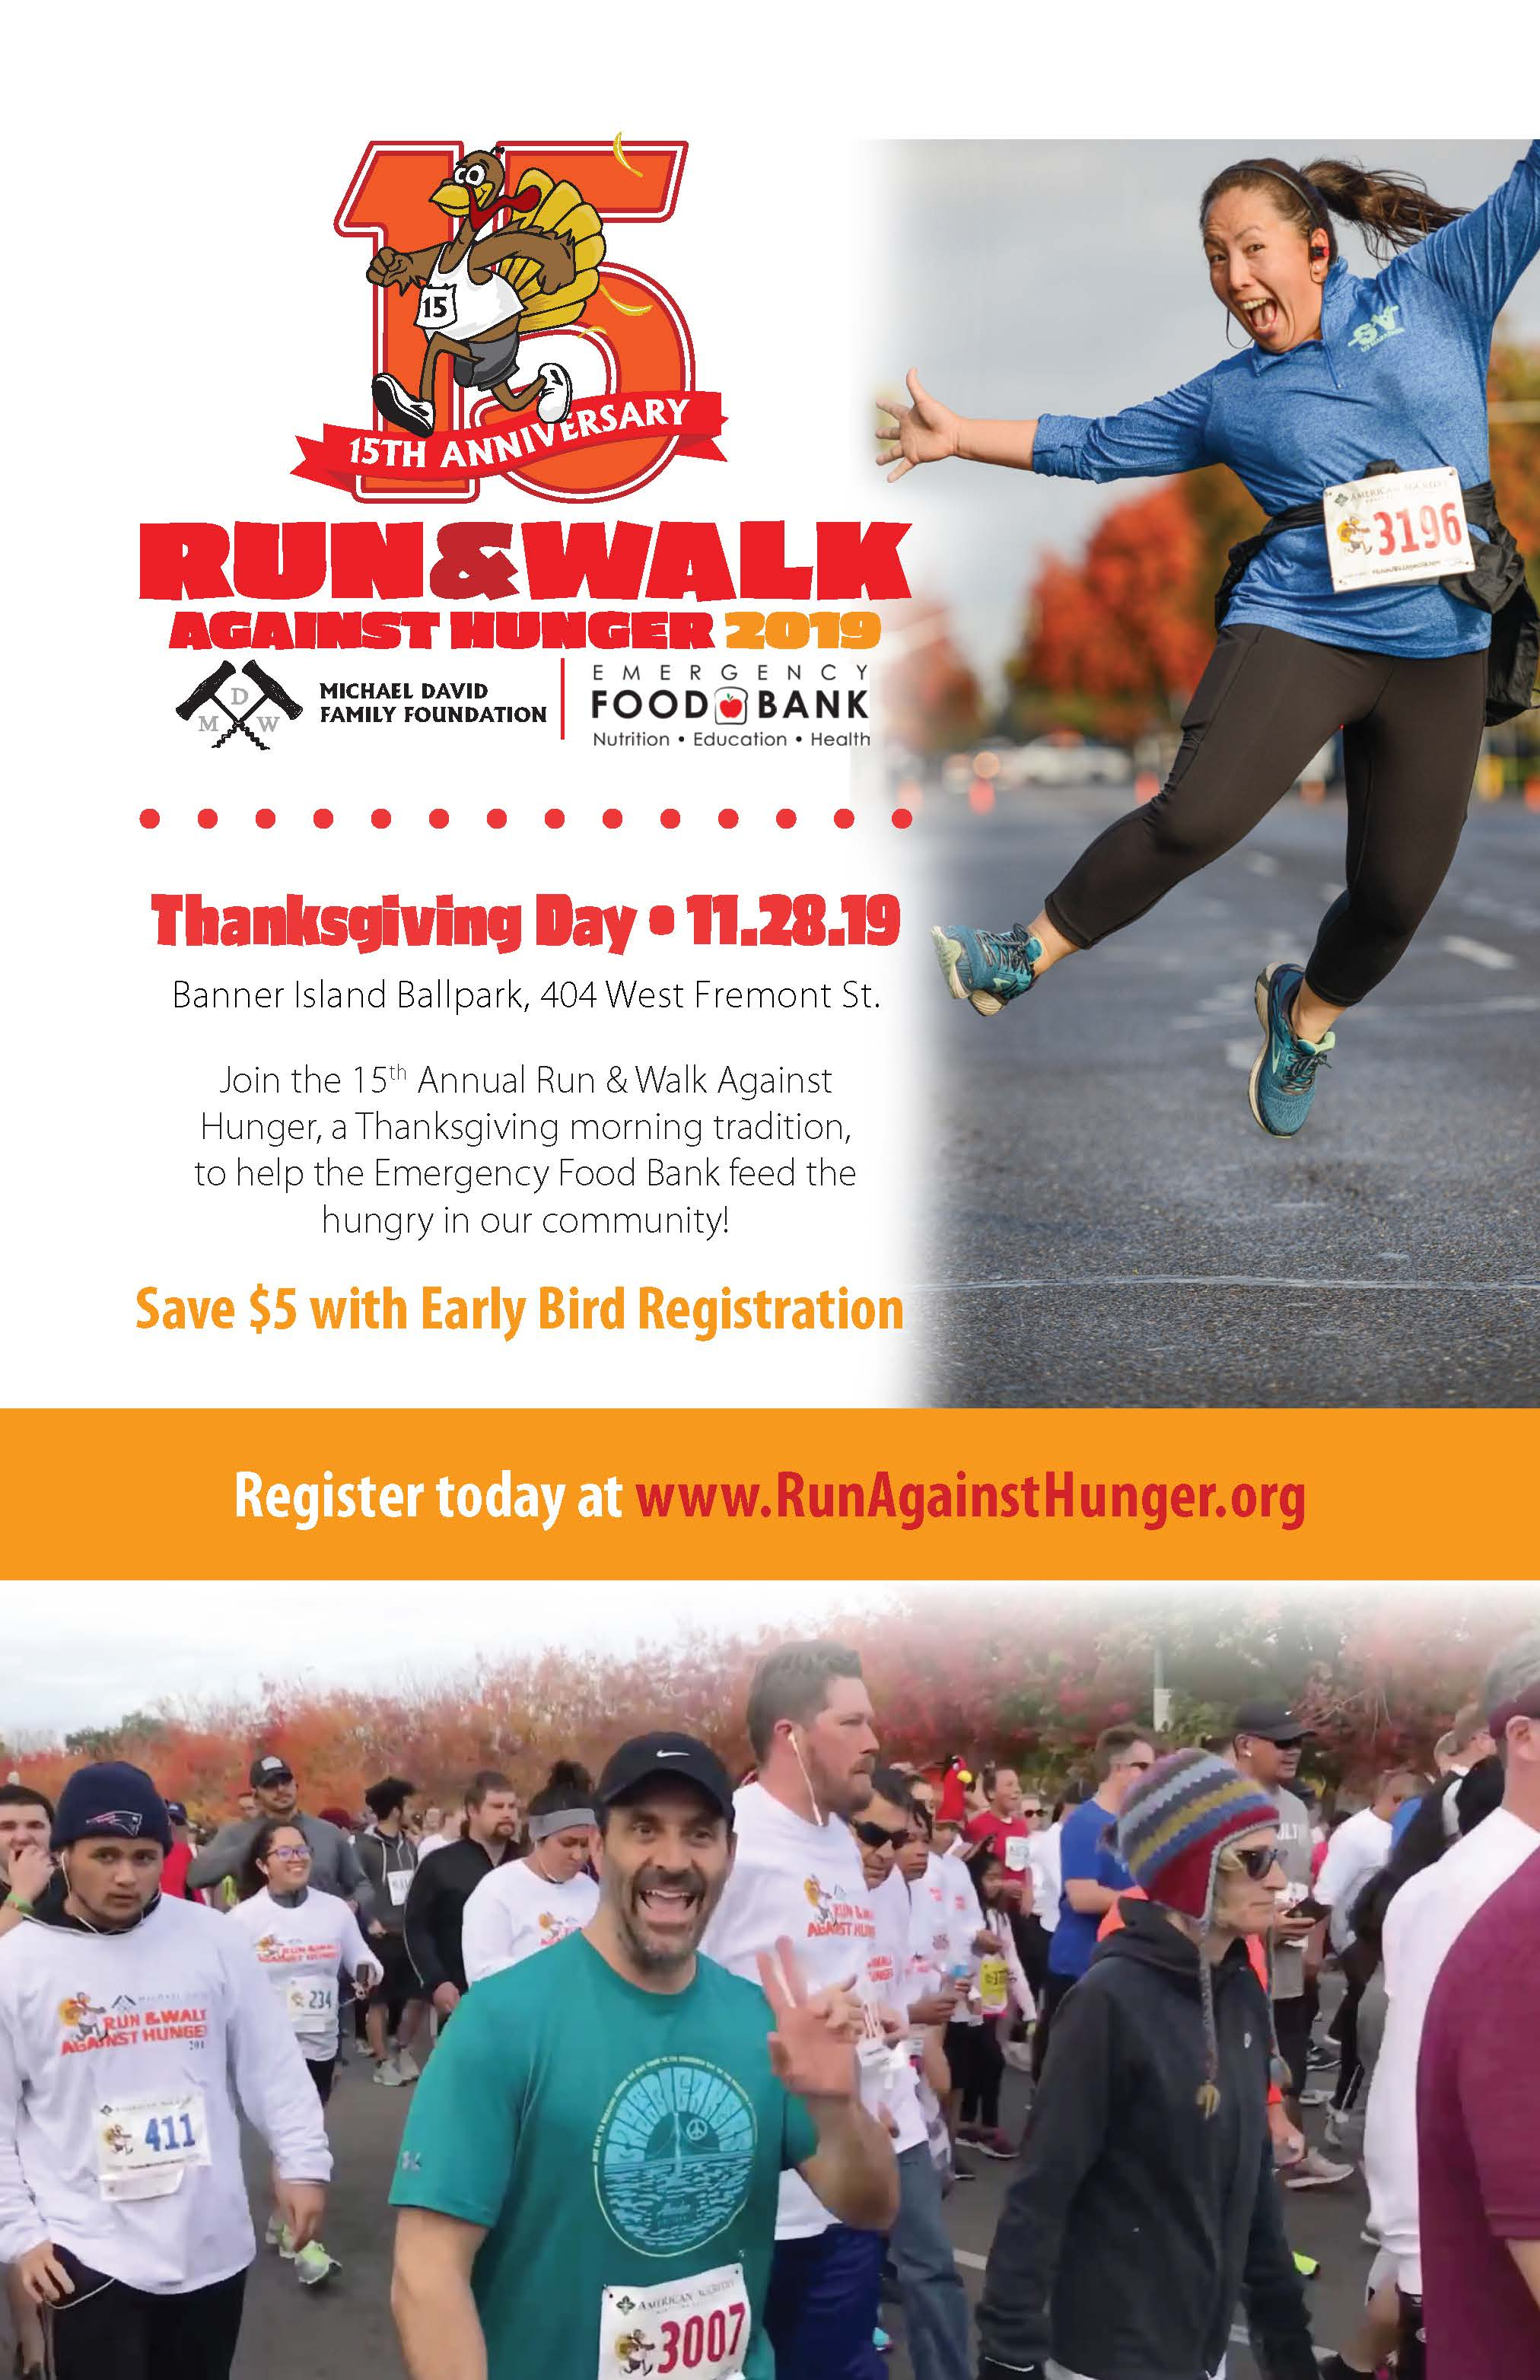 Flyer for 15th Anniversary of the Thanksgiving Run & Walk Against Hunger. Thanksgiving Day. Banner Island Ballpark, 404 W. Fremont St.